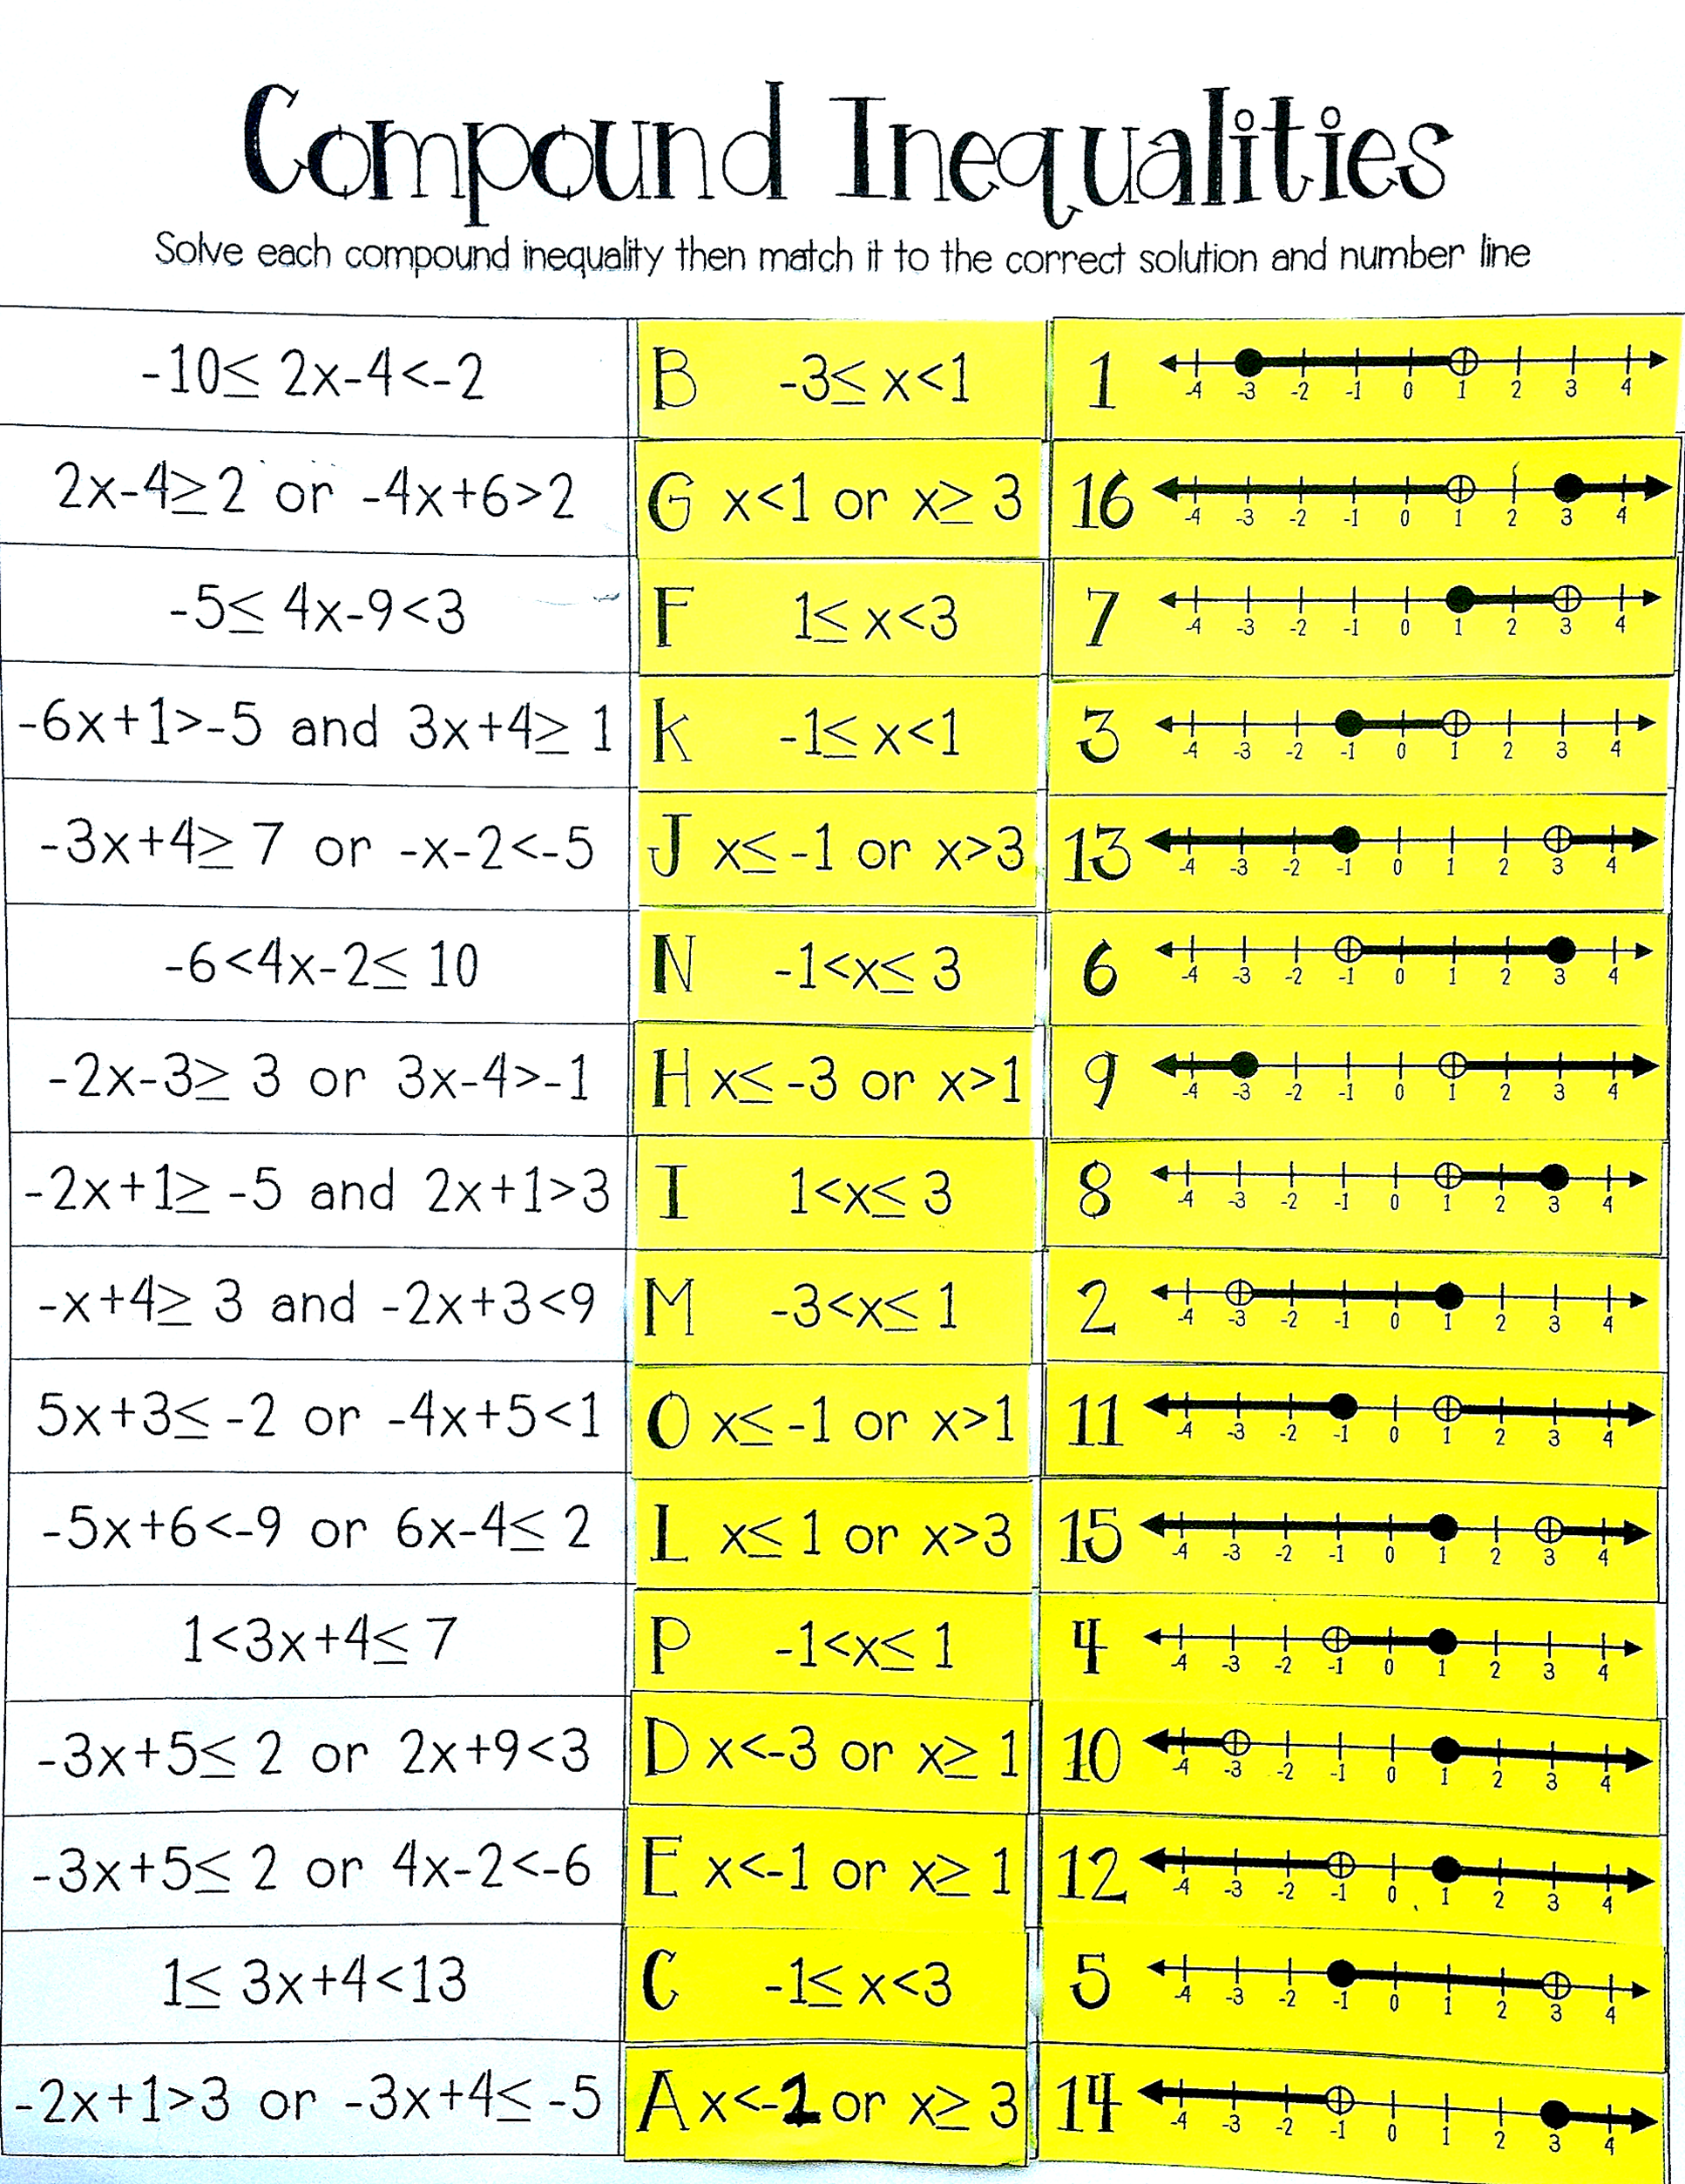 Compound Inequalities Card Match Activity – Compound Inequalities Worksheet